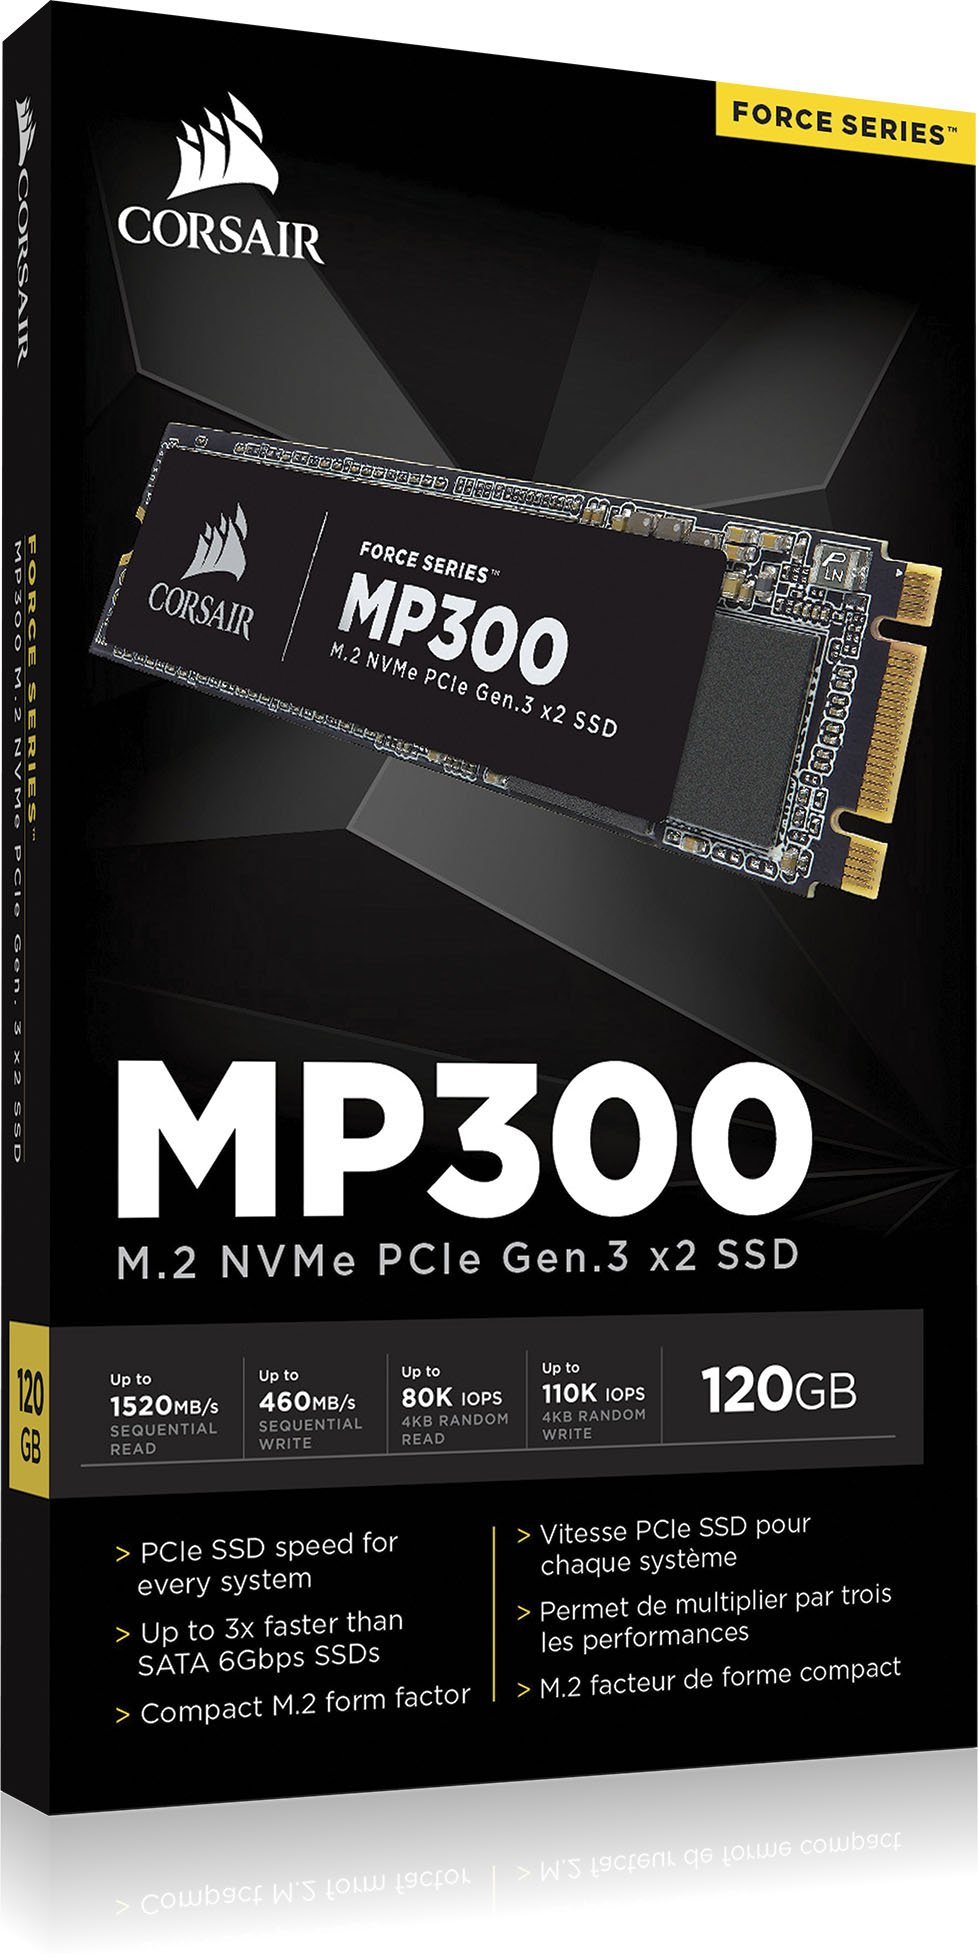 Computer_Drive_OR_Storage 7 High-speed NVMe PCI Express Gen 3 x2 interface for speeds up to 1600MB/sec, 3x faster than SATA 6Gbps Utilizing state-of-the art, high-density 3D TLC NAND for the ideal mix of performance, Endurance and value Compact M. 2 2280 industry standard form Factor fits directly into your notebook or motherboard